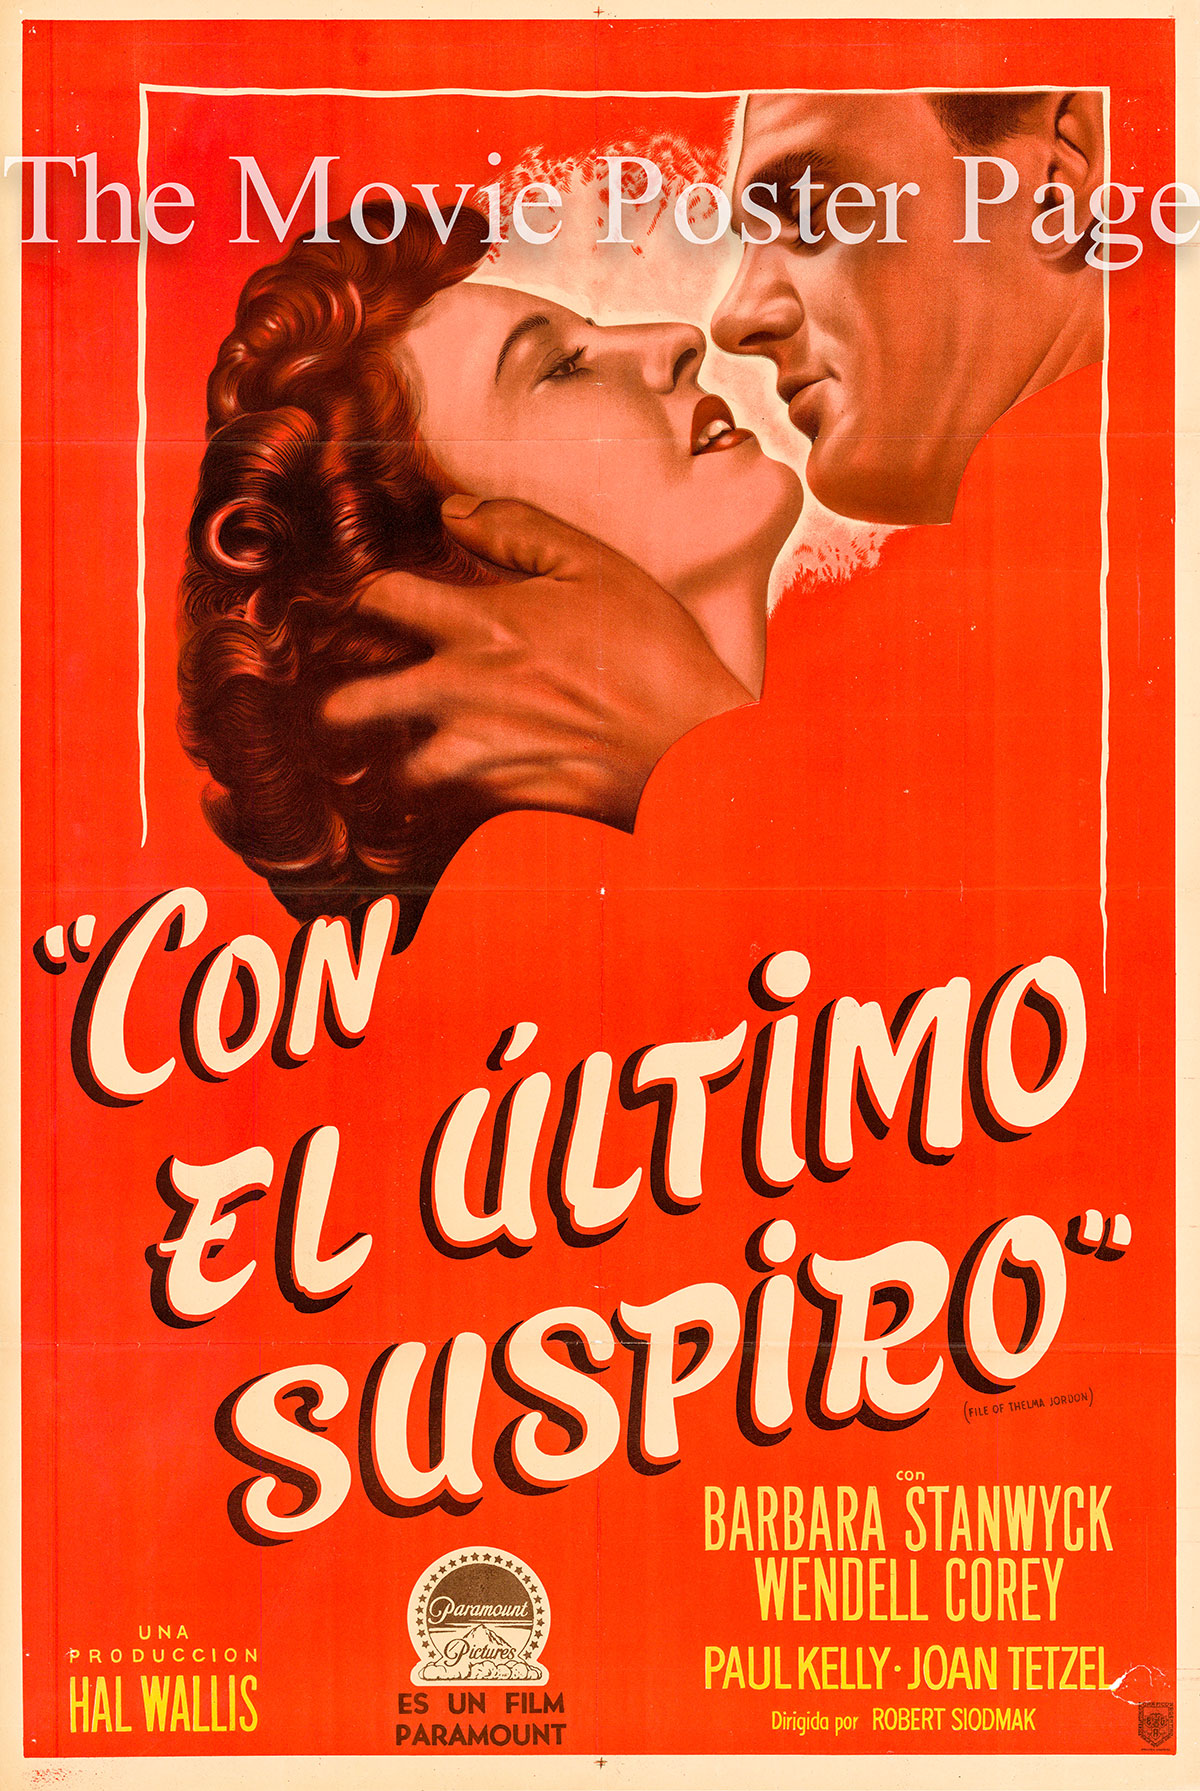 Pictured is an Argentine one-sheet poster for the 1950 Robert Siodmak film The File on Thelma Jordon starring Barbara Stanwyck.